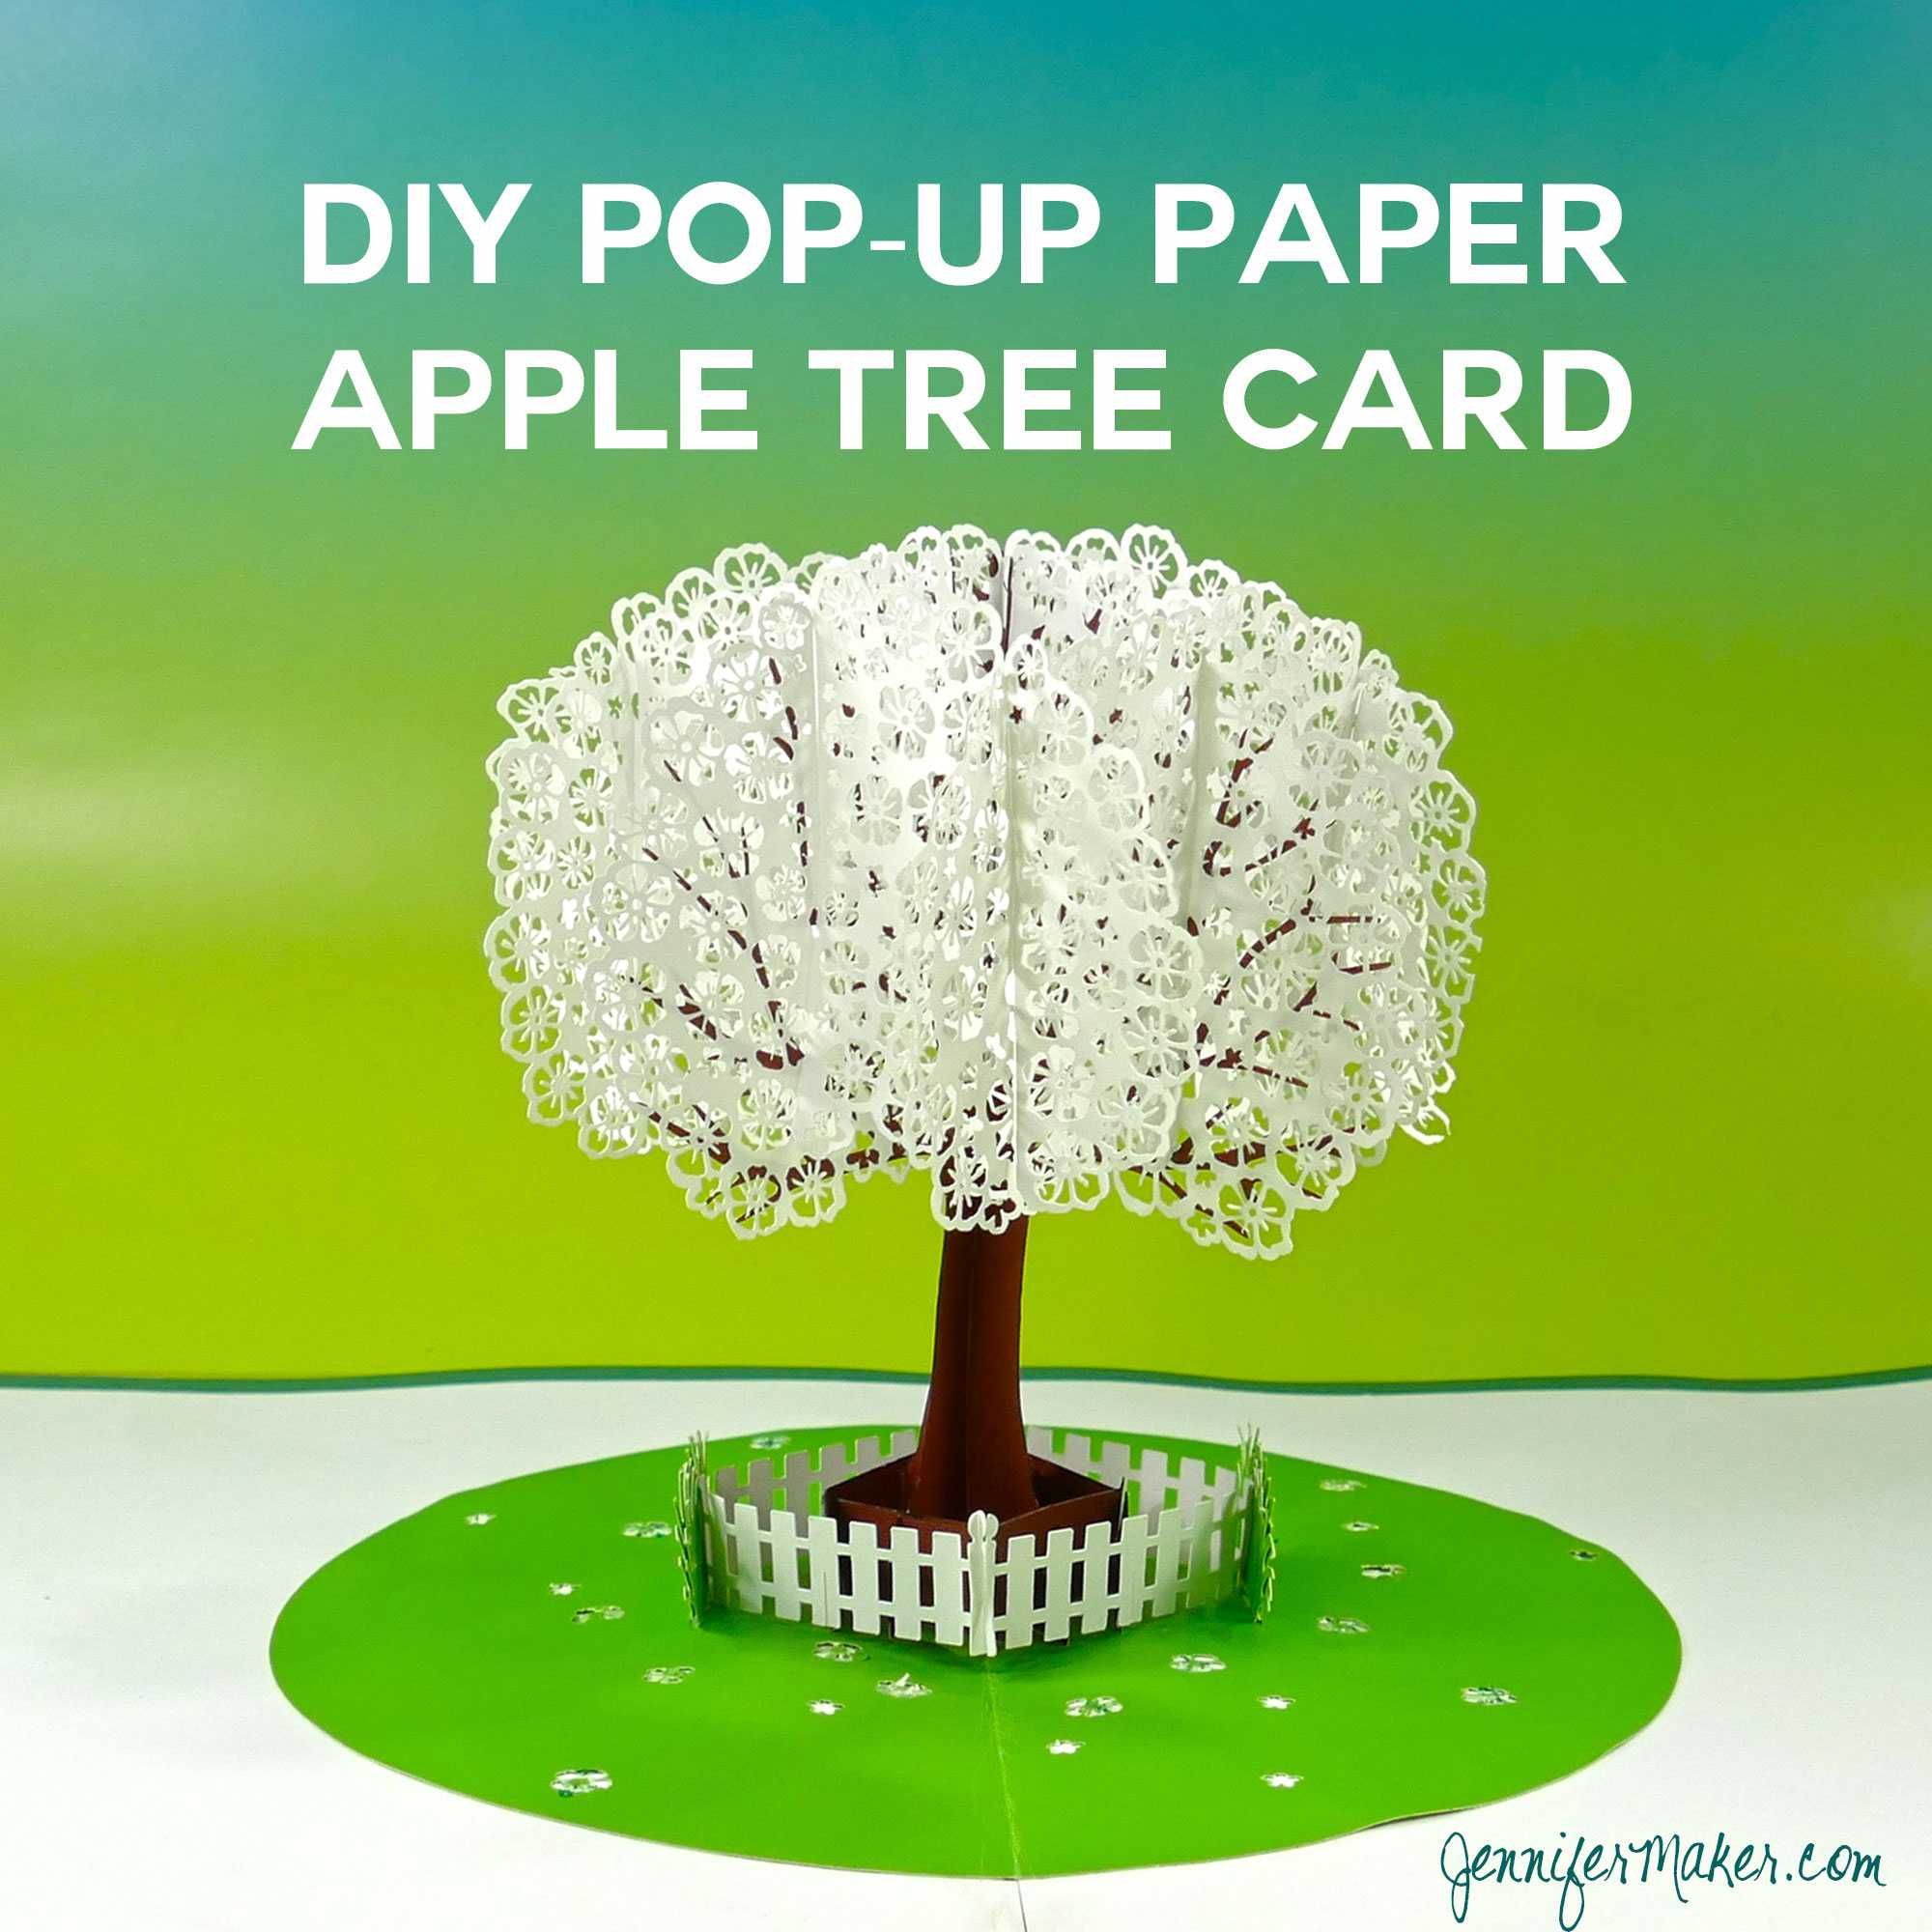 Pop Up Paper Apple Tree Card (3D Sliceform) - Jennifer Maker For Pop Up Tree Card Template